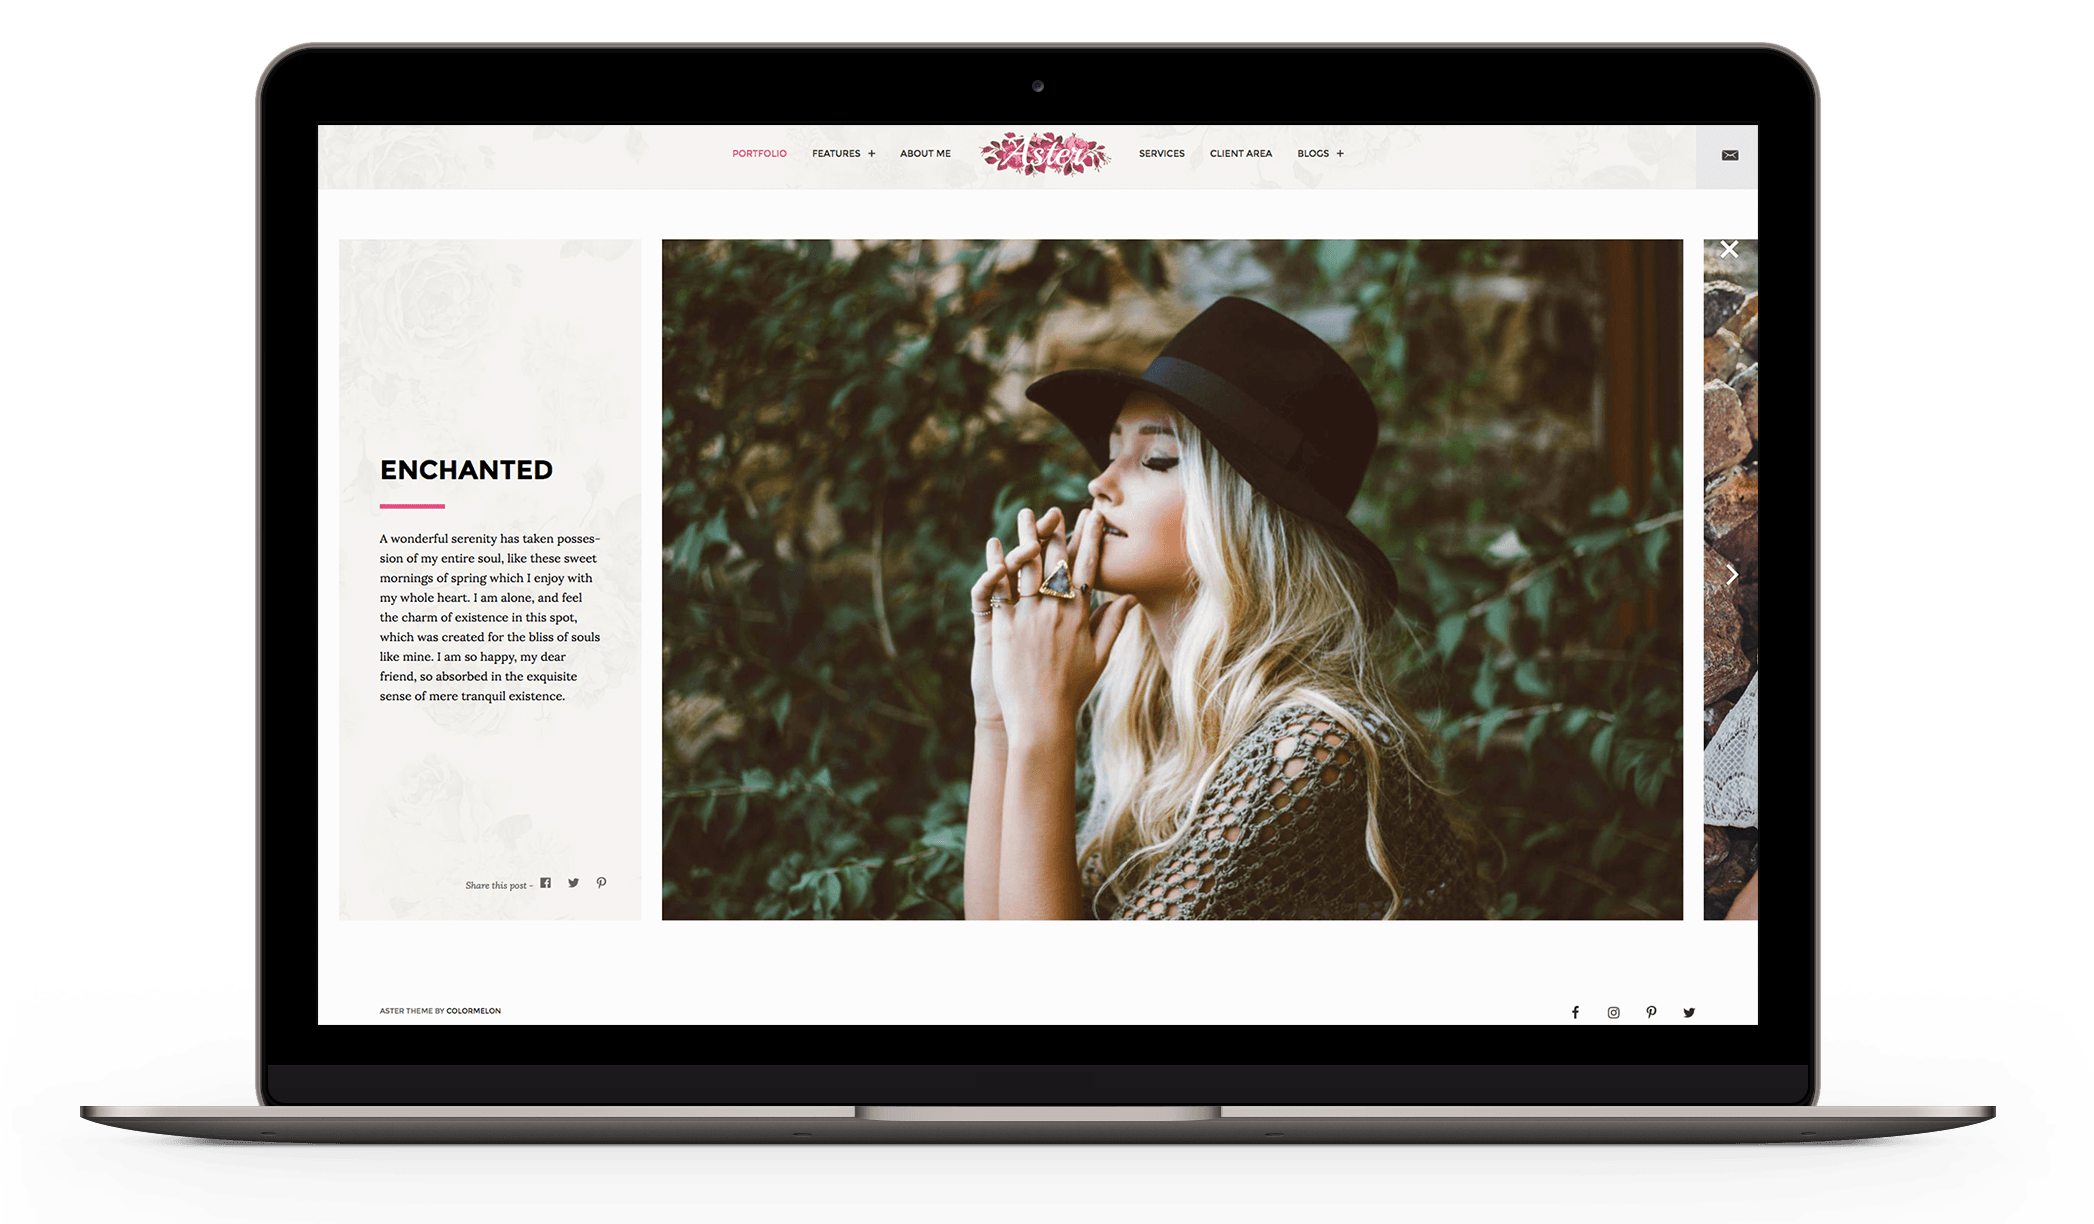 Aster - Horizontally scrolling photography theme